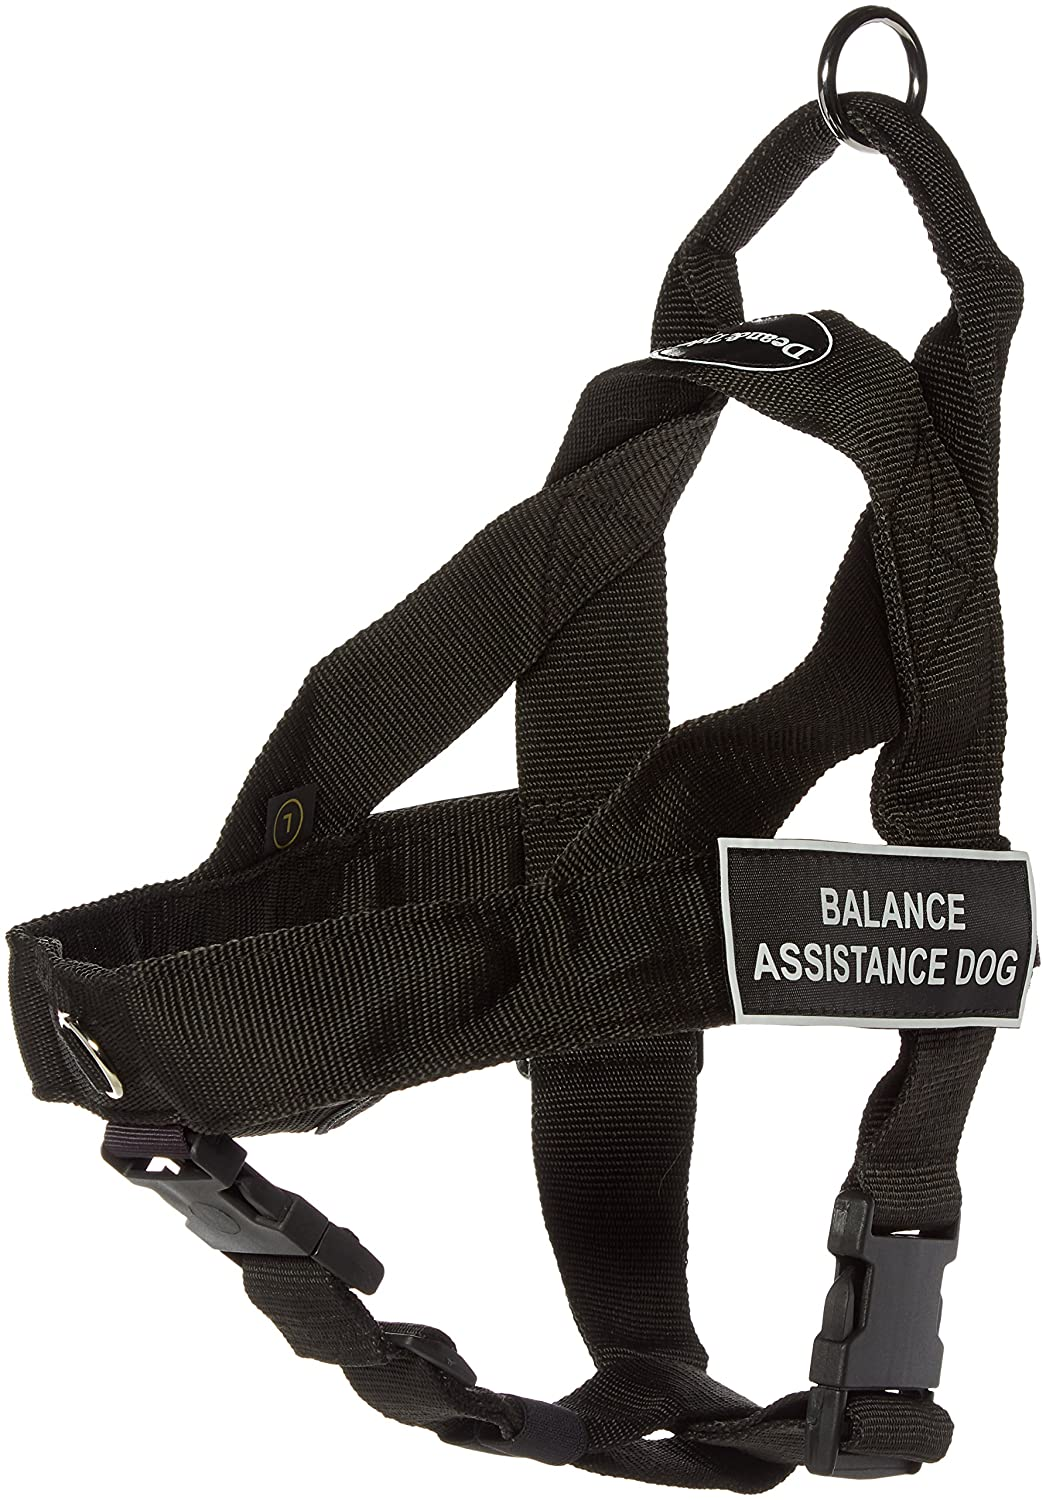 Dean & Tyler Universal No Pull 31-Inch to 42-Inch Dog Harness, Large, Balance Assistance Dog, Black